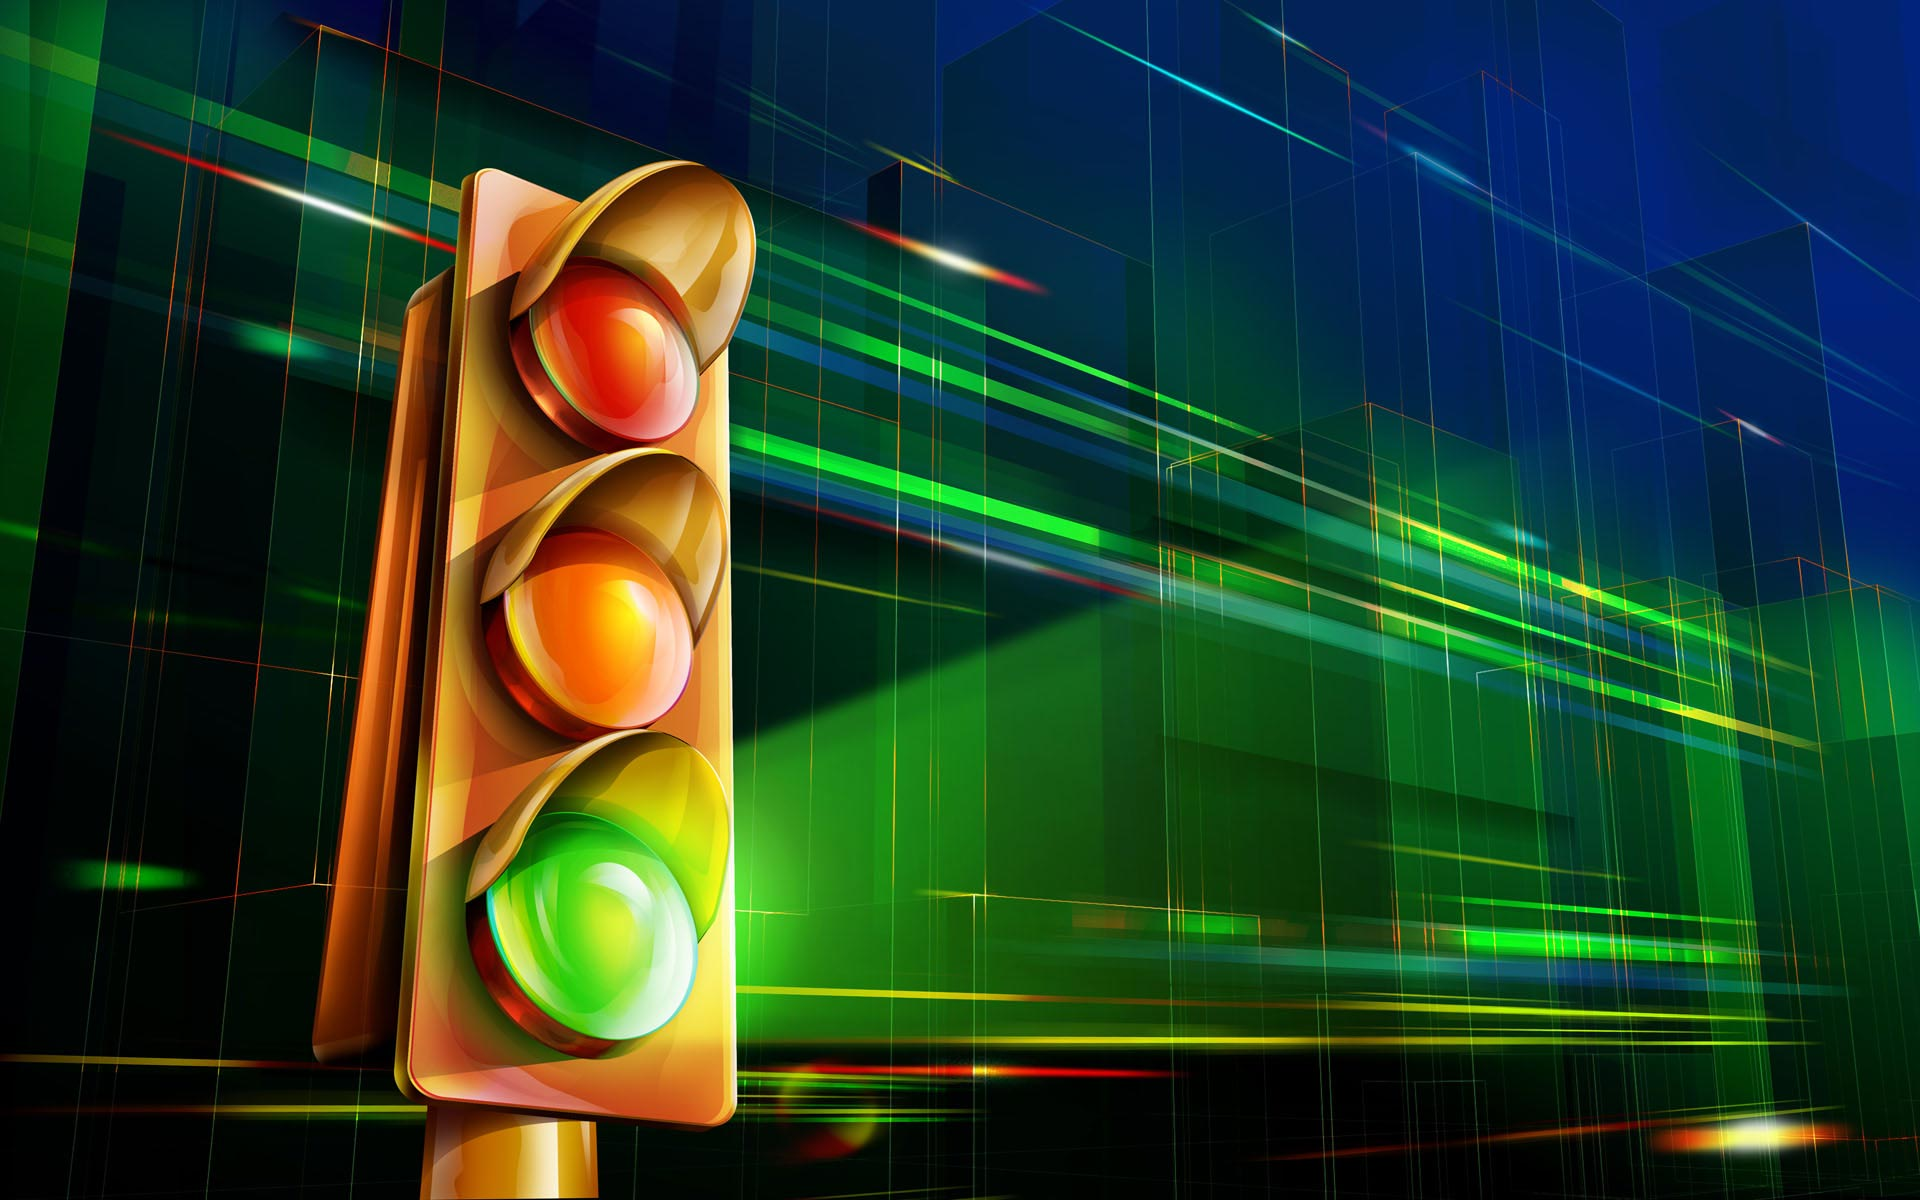 Traffic Lights Wallpaper 45041 1920x1080 px